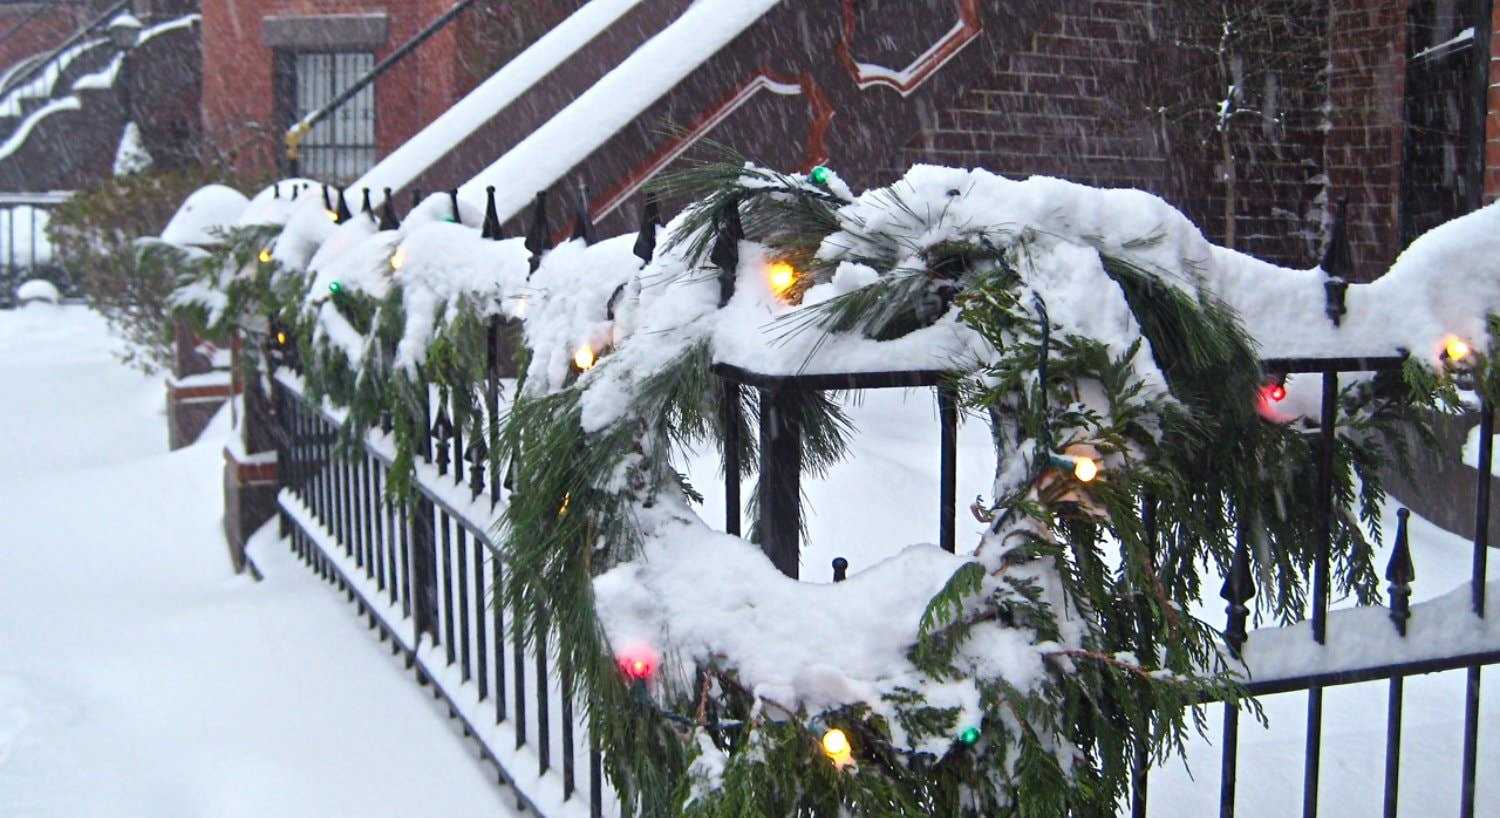 Row of red brick brownstones with black metal railings covered in greenery and white snow